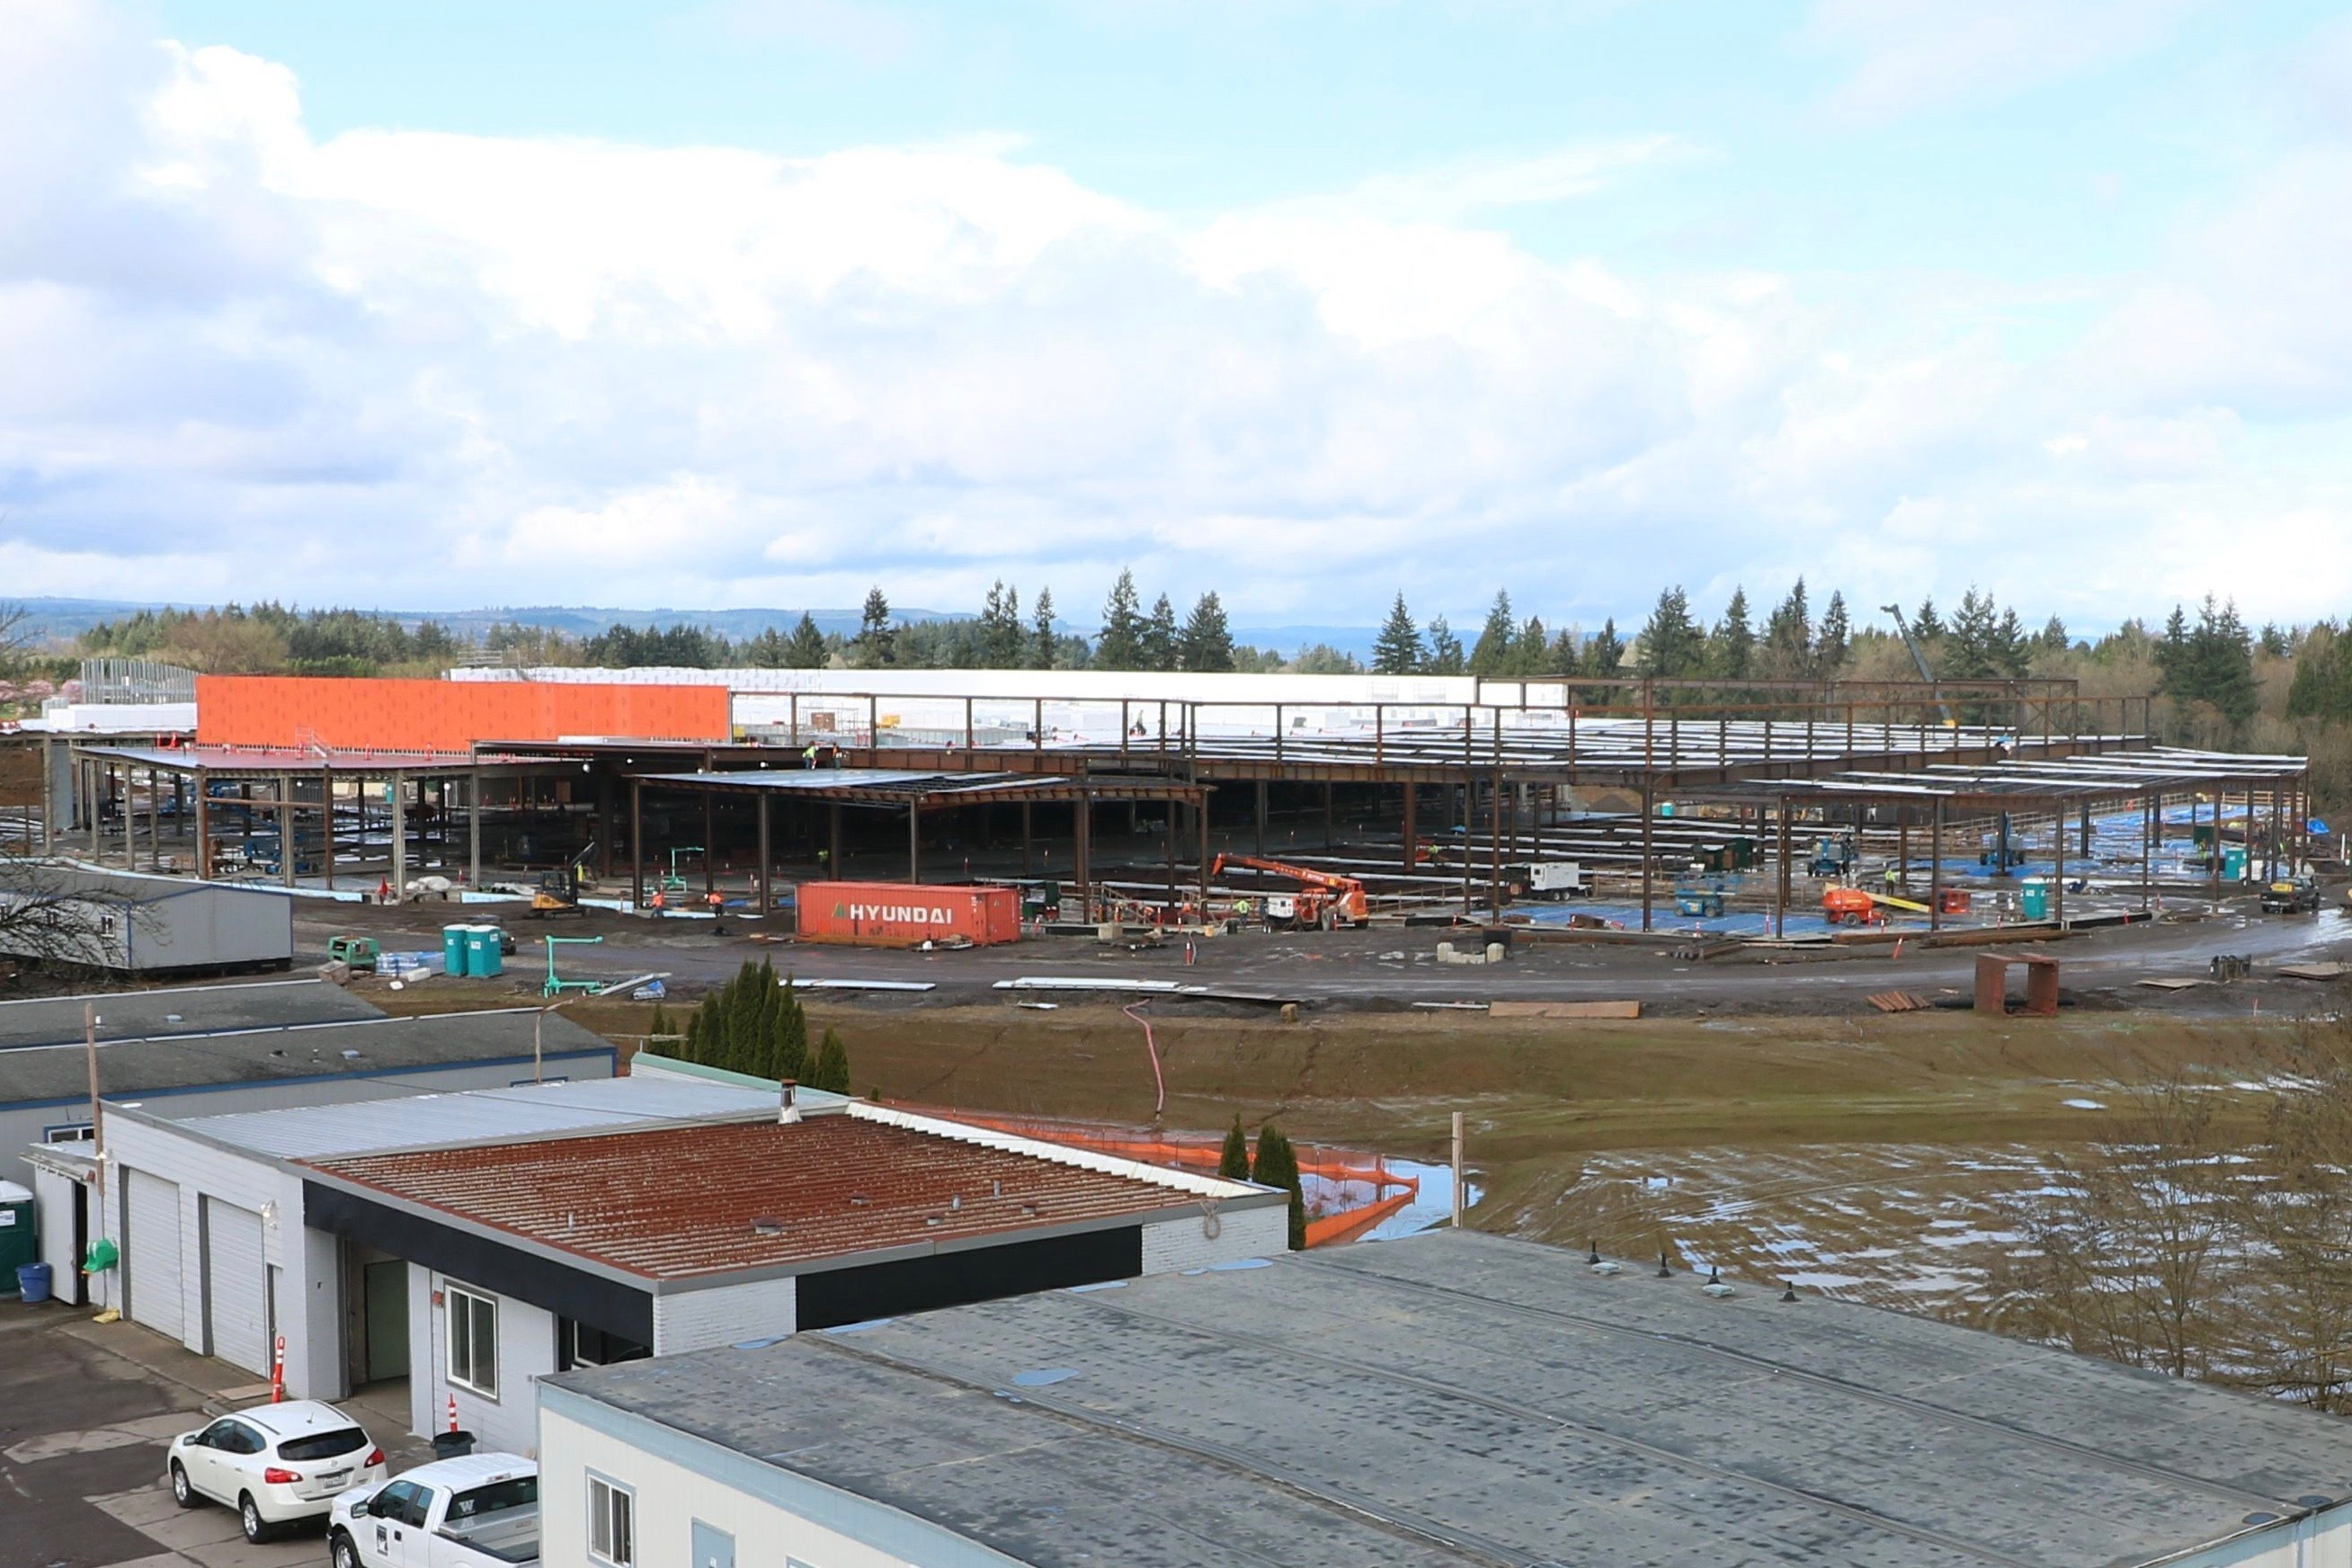 Cowlitz Tribe faces unusual opposition to casino wastewater plant